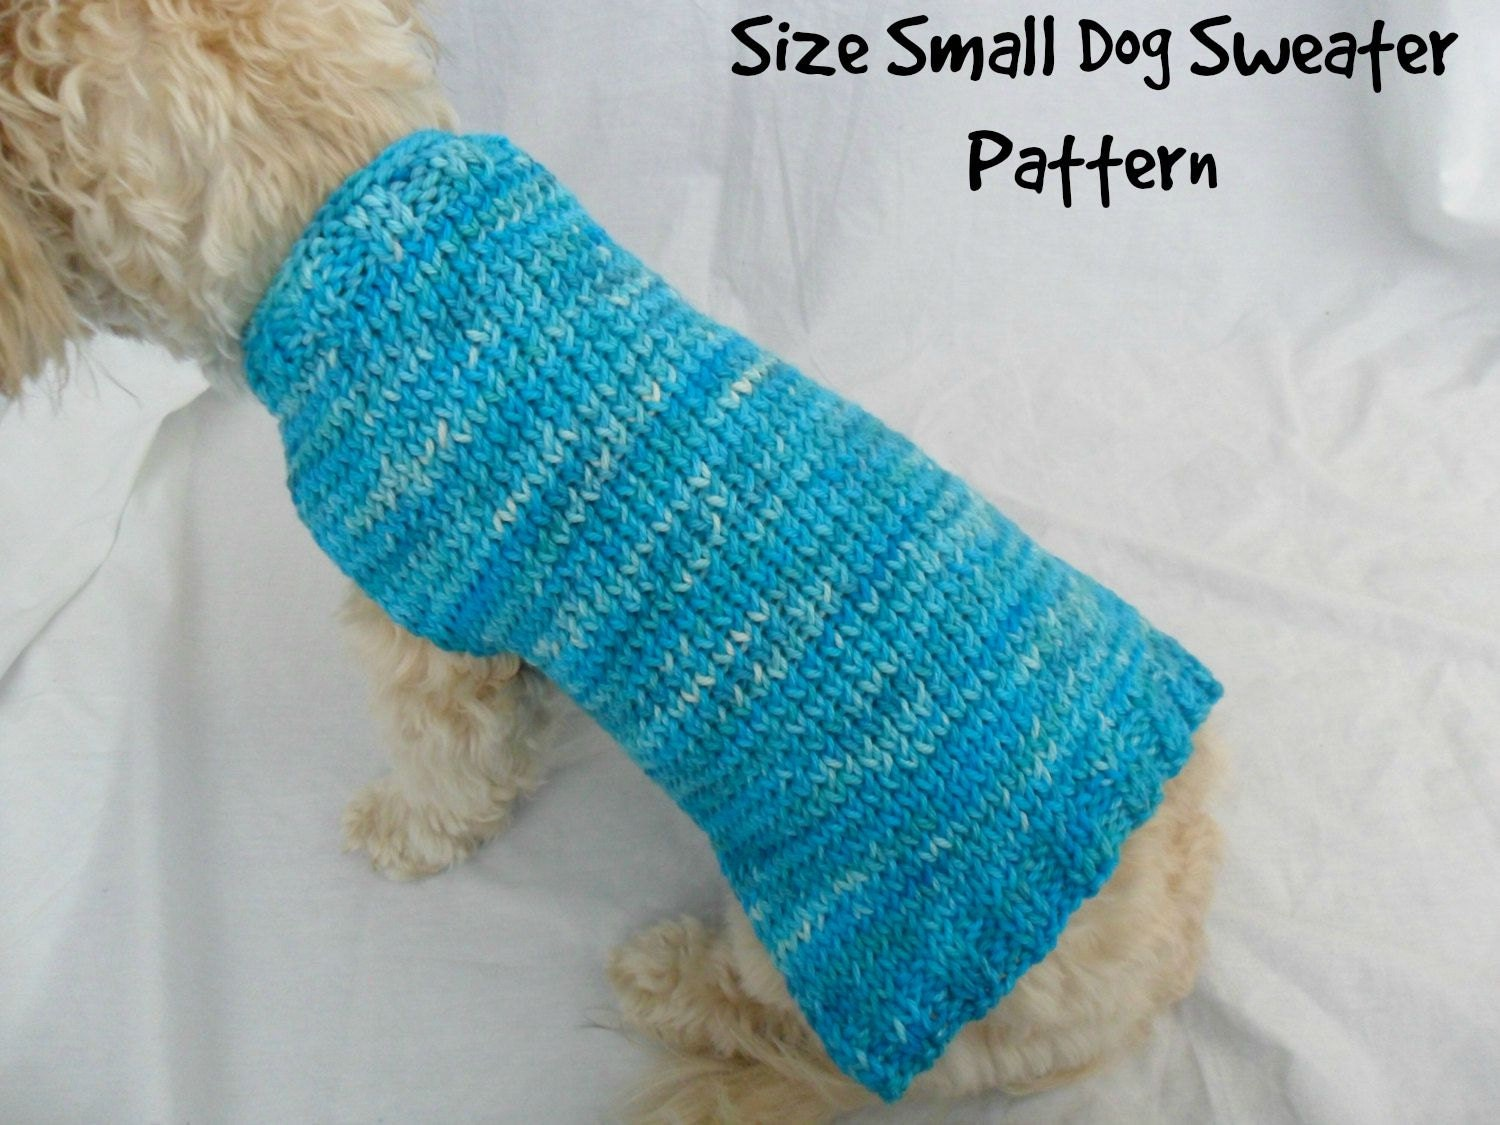 Simple dog sweater knitting pattern pdf small dog sweater - Knitting for dogs sweaters ...